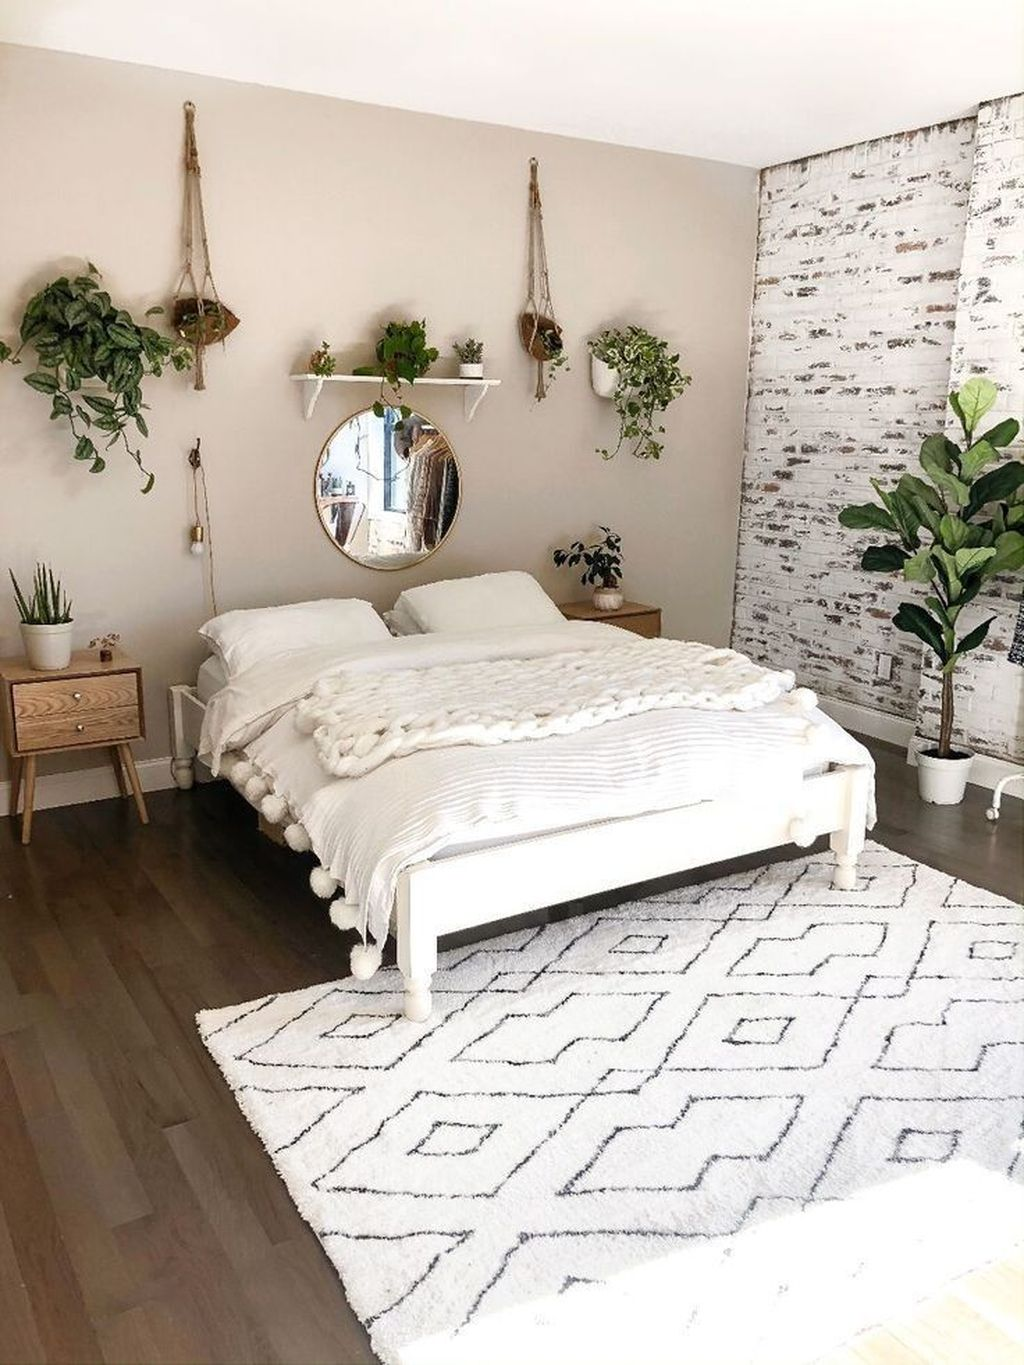 Lovely Bedroom Decor With Plant Ideas 26